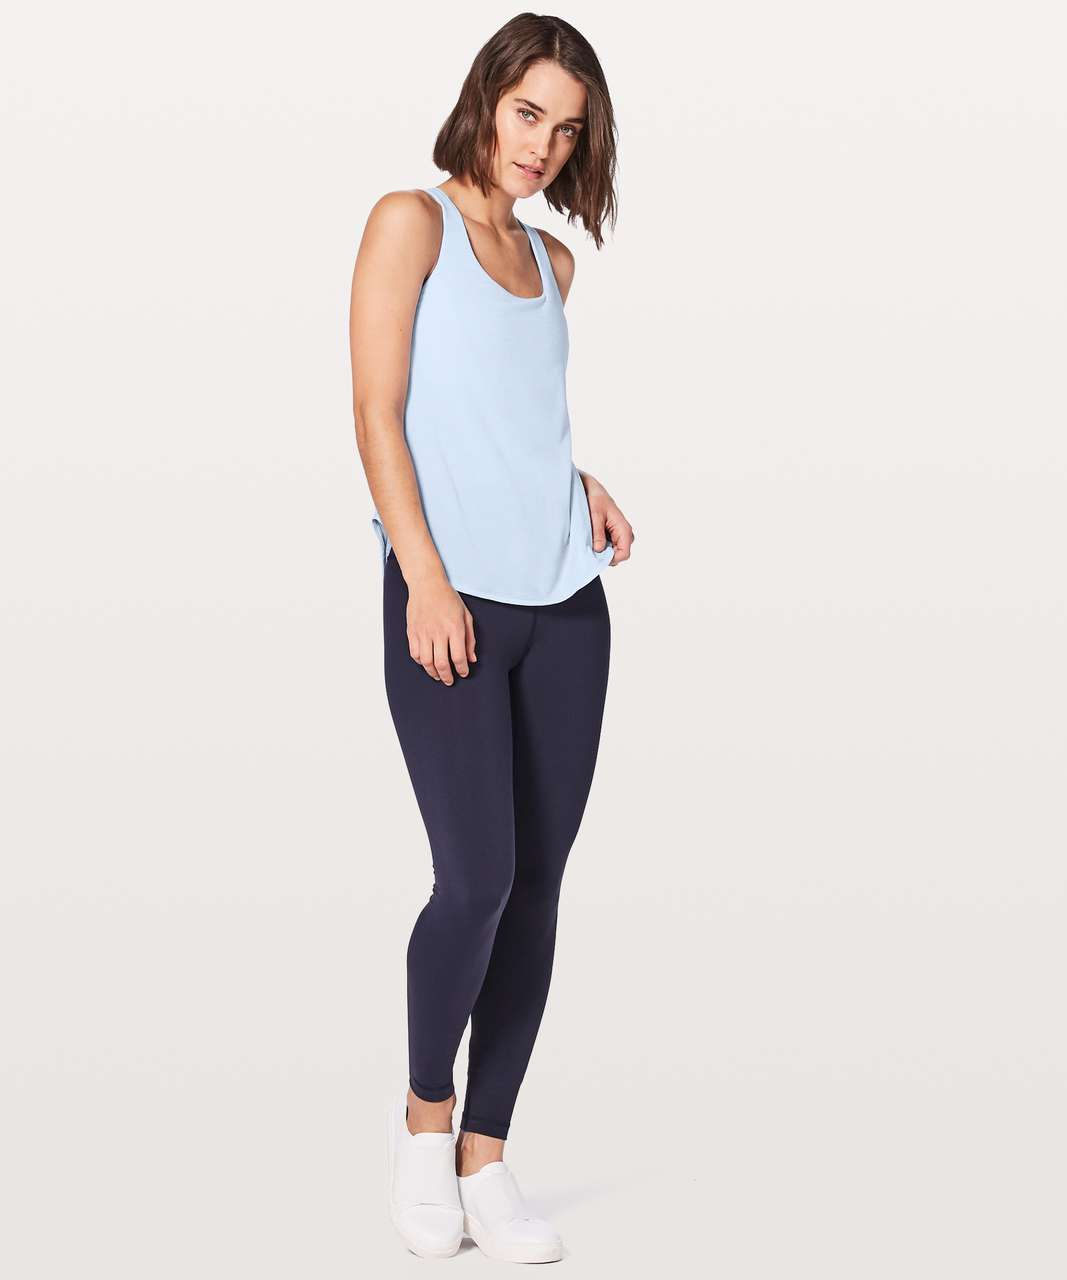 Lululemon Free To Be Serene Tank (2 In 1) Medium Support For C/D Cup - Heathered Cool Breeze / Cool Breeze